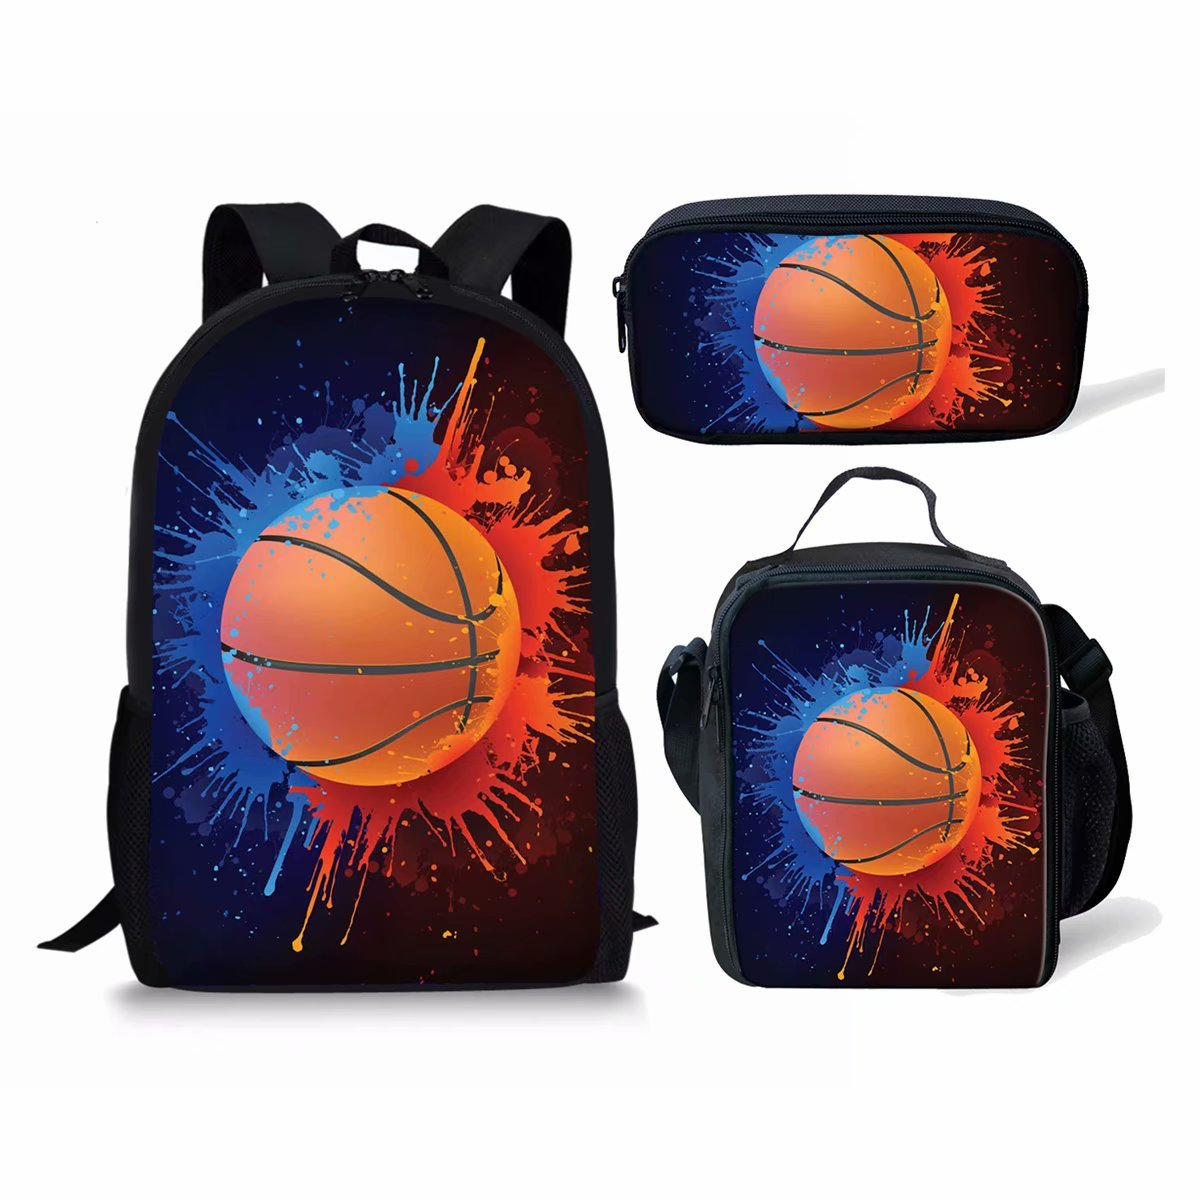 Basketball Print Kids Boy Backpack School Bookbag Lunch Bag Pencil Bag 3 Pieces Set by Mumeson (Image #1)